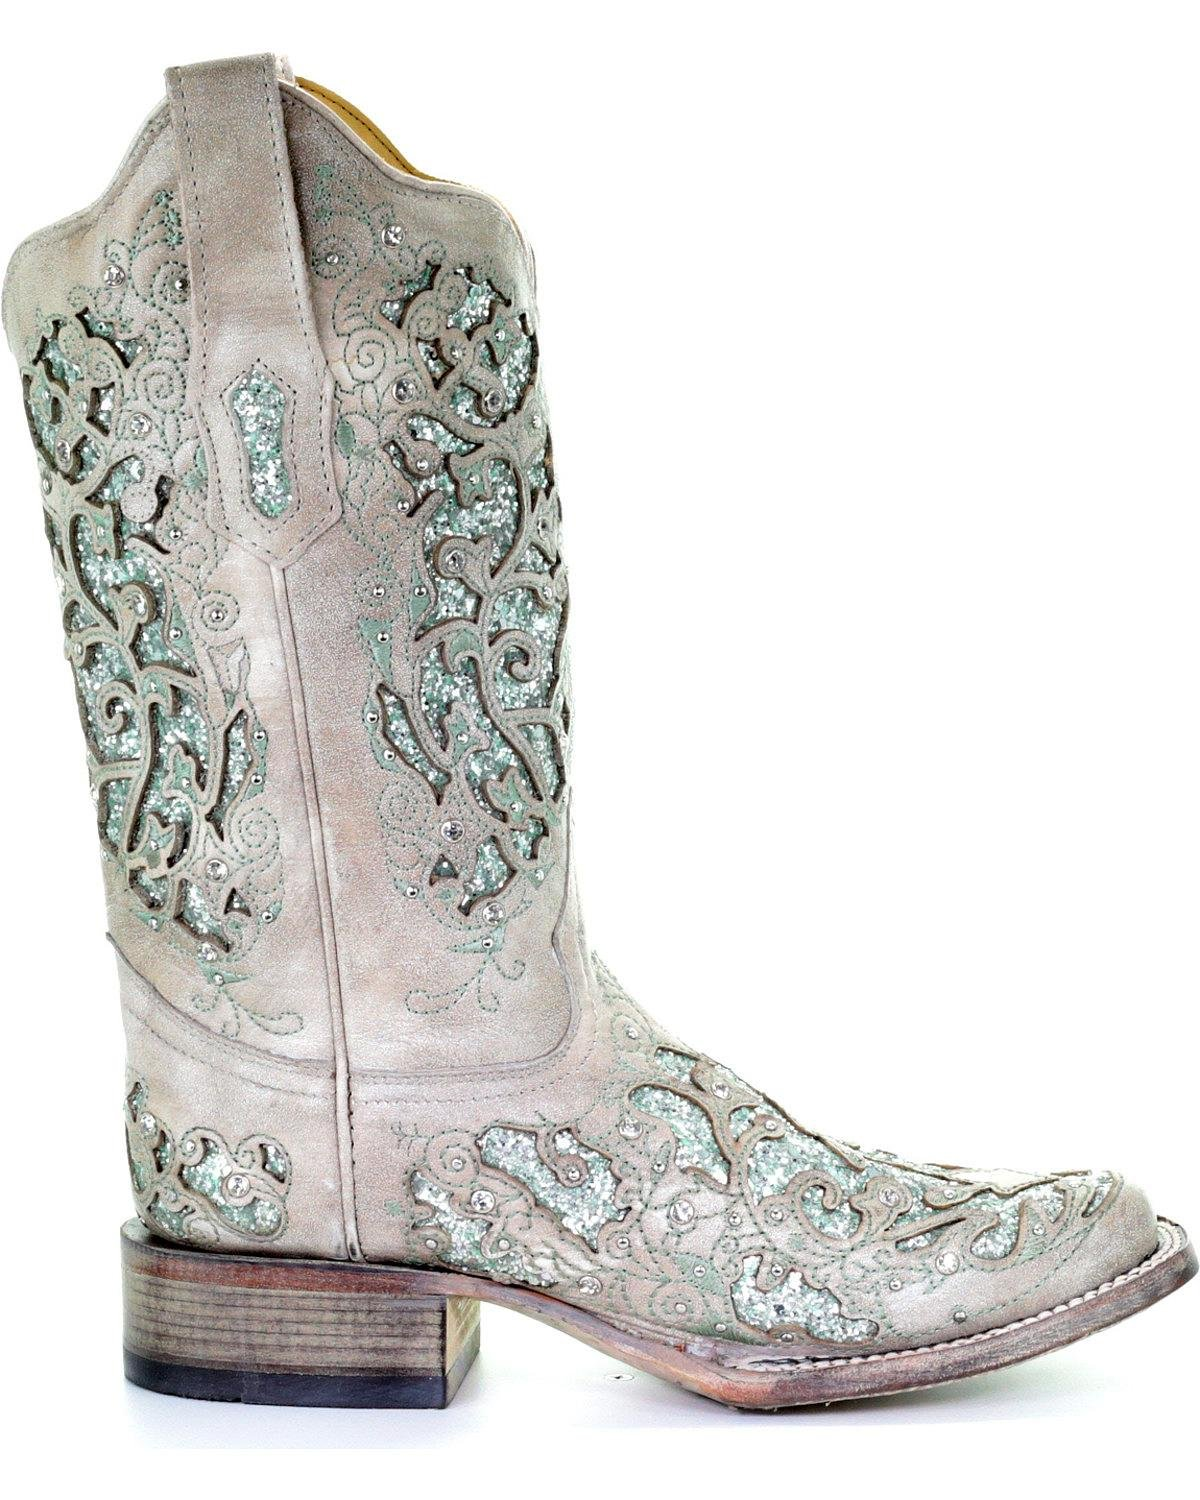 CORRAL Cowgirl Women's Glitter and Crystals Cowgirl CORRAL Boot Square Toe - A3435 B07B6B3WWL 8 B(M) US|White 979556